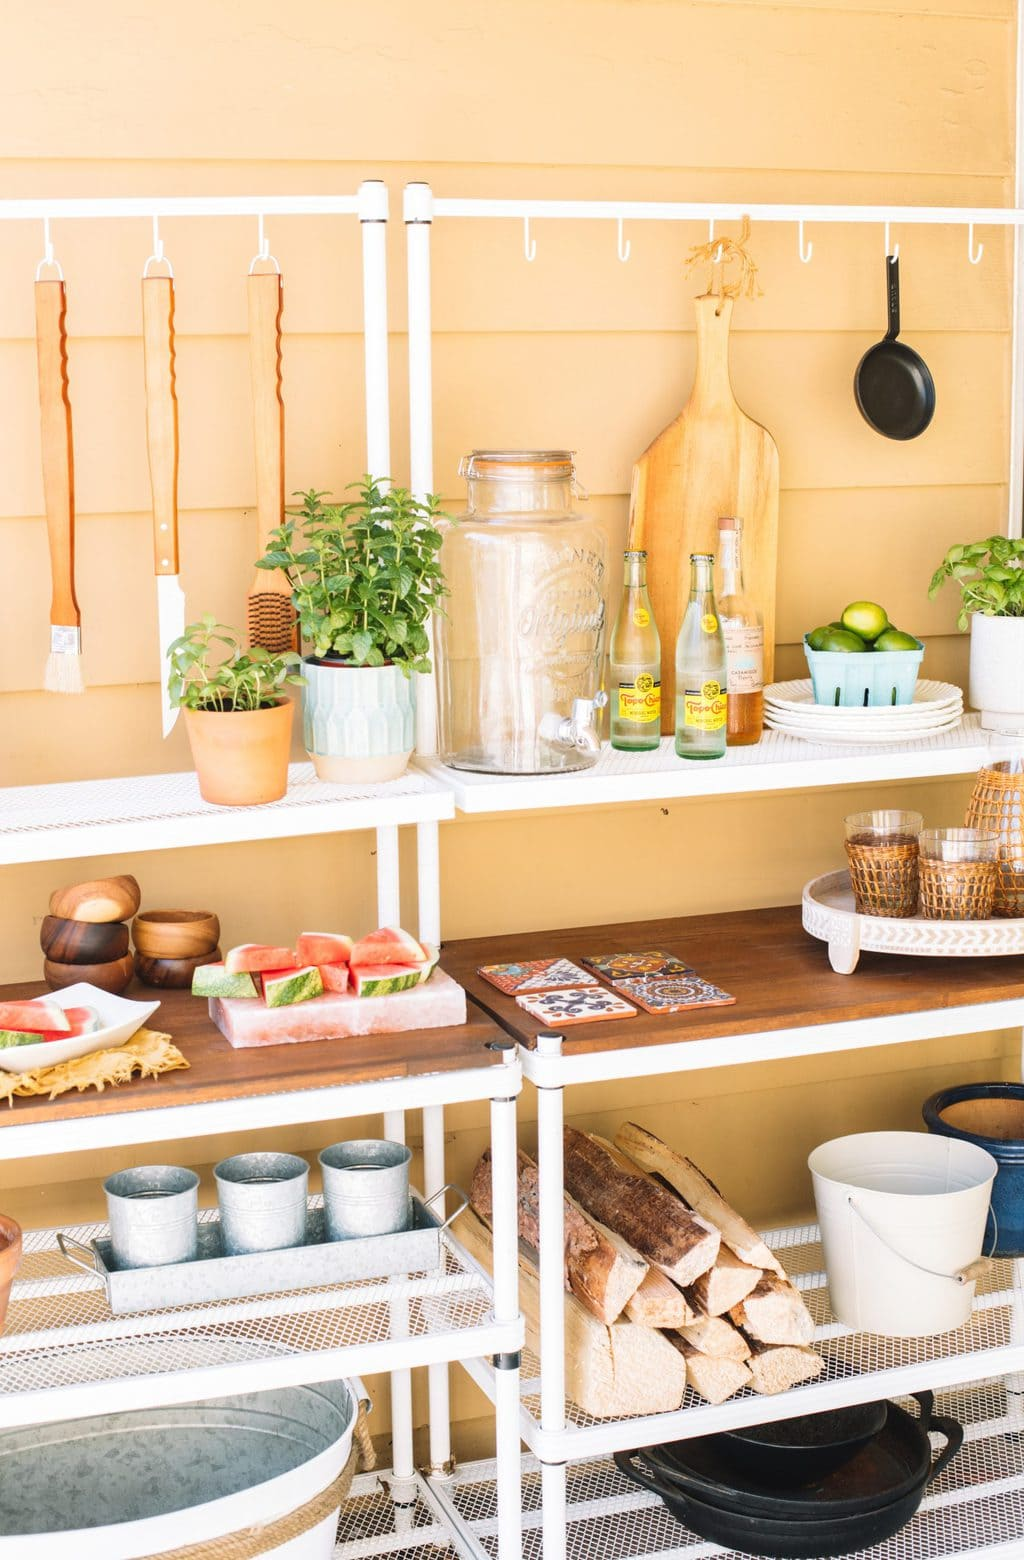 An outdoor patio buffet setup with bbq tools, plates, cups, planters and firewood.